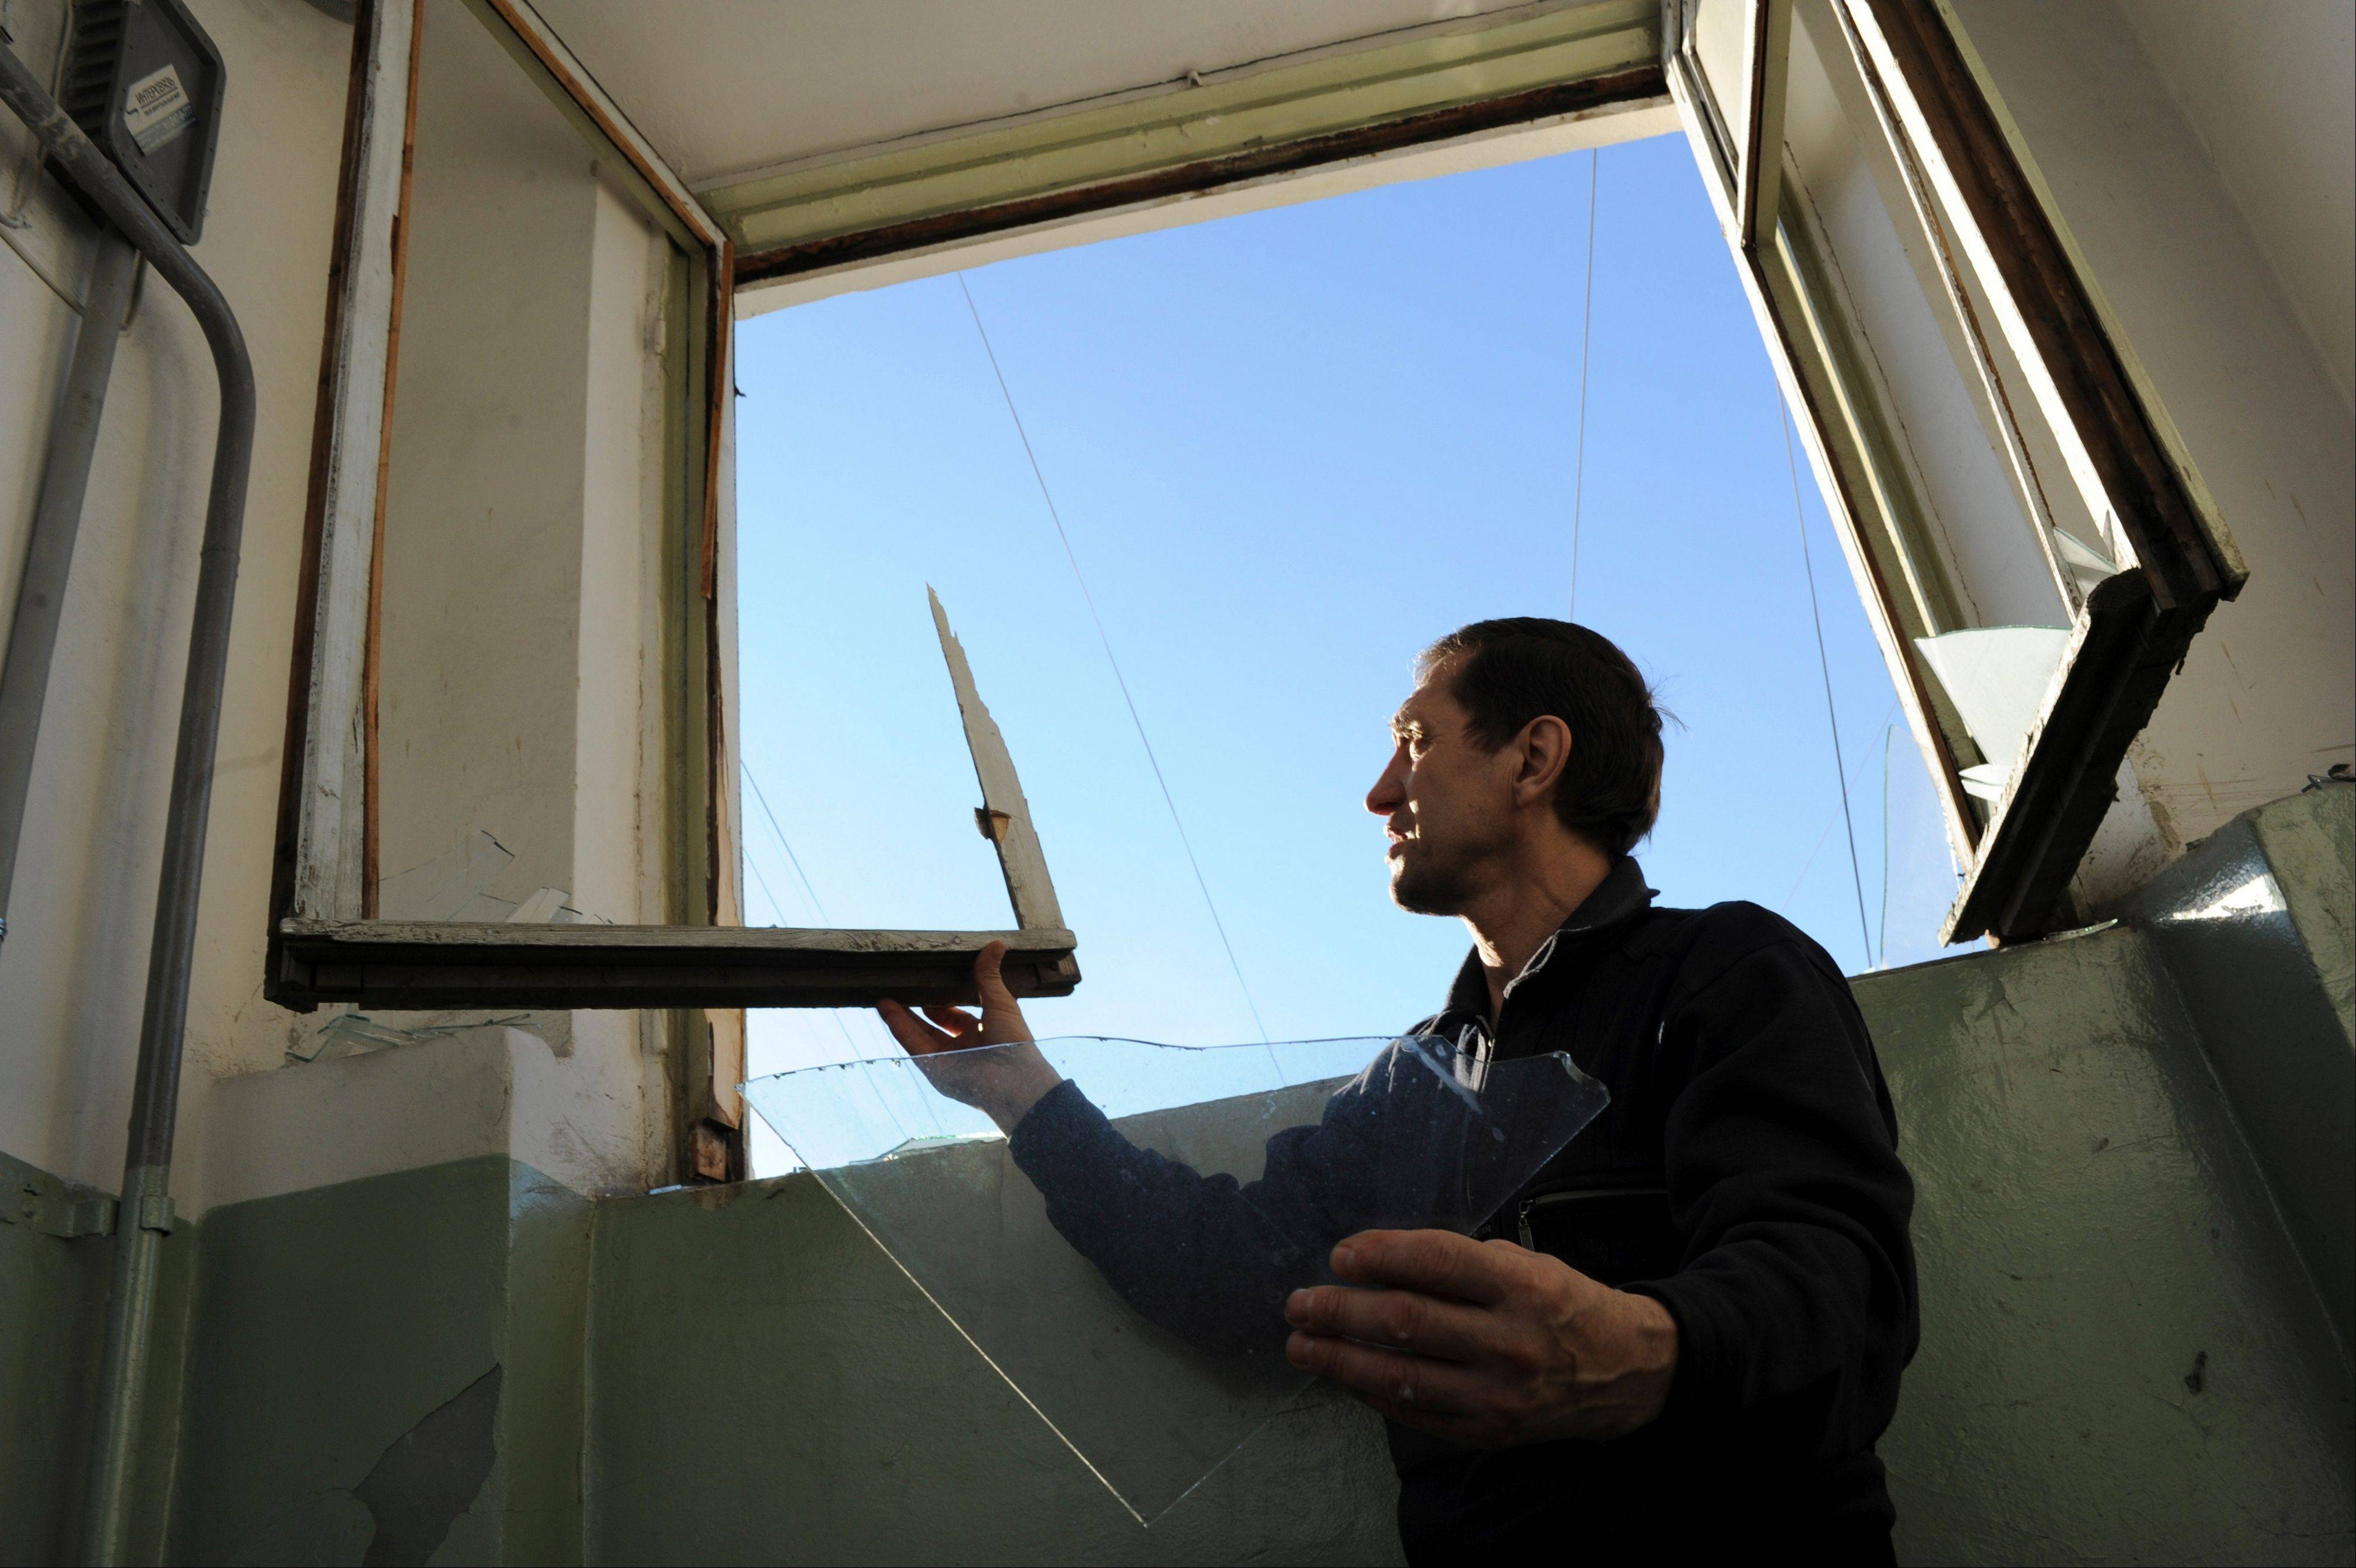 A local resident repairs a window broken by a shock wave from a meteor explosion in Chelyabinsk, about 930 miles east of Moscow, Friday, Feb. 15, 2013.